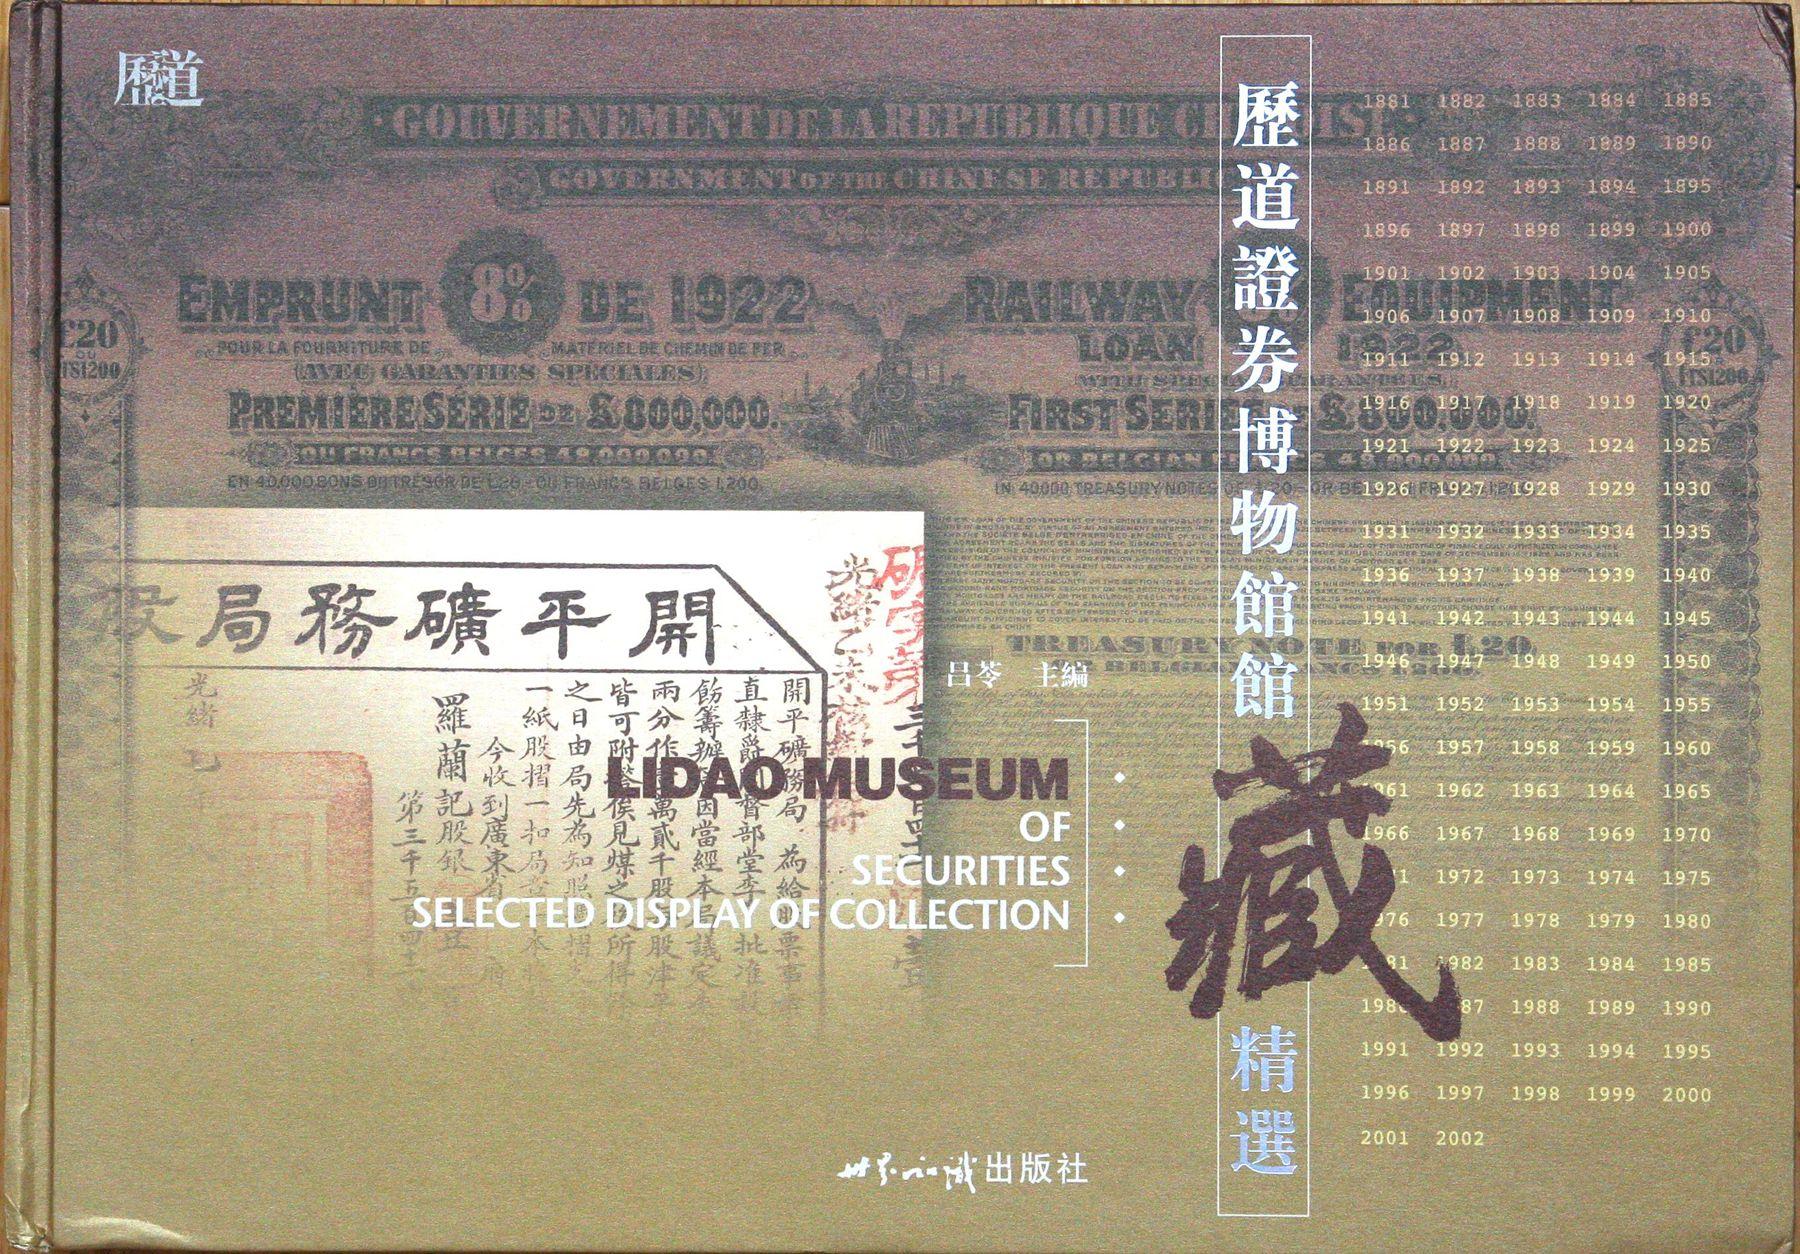 F2611, Lidao Museum of Securities, Selected Display of Collection (2003)